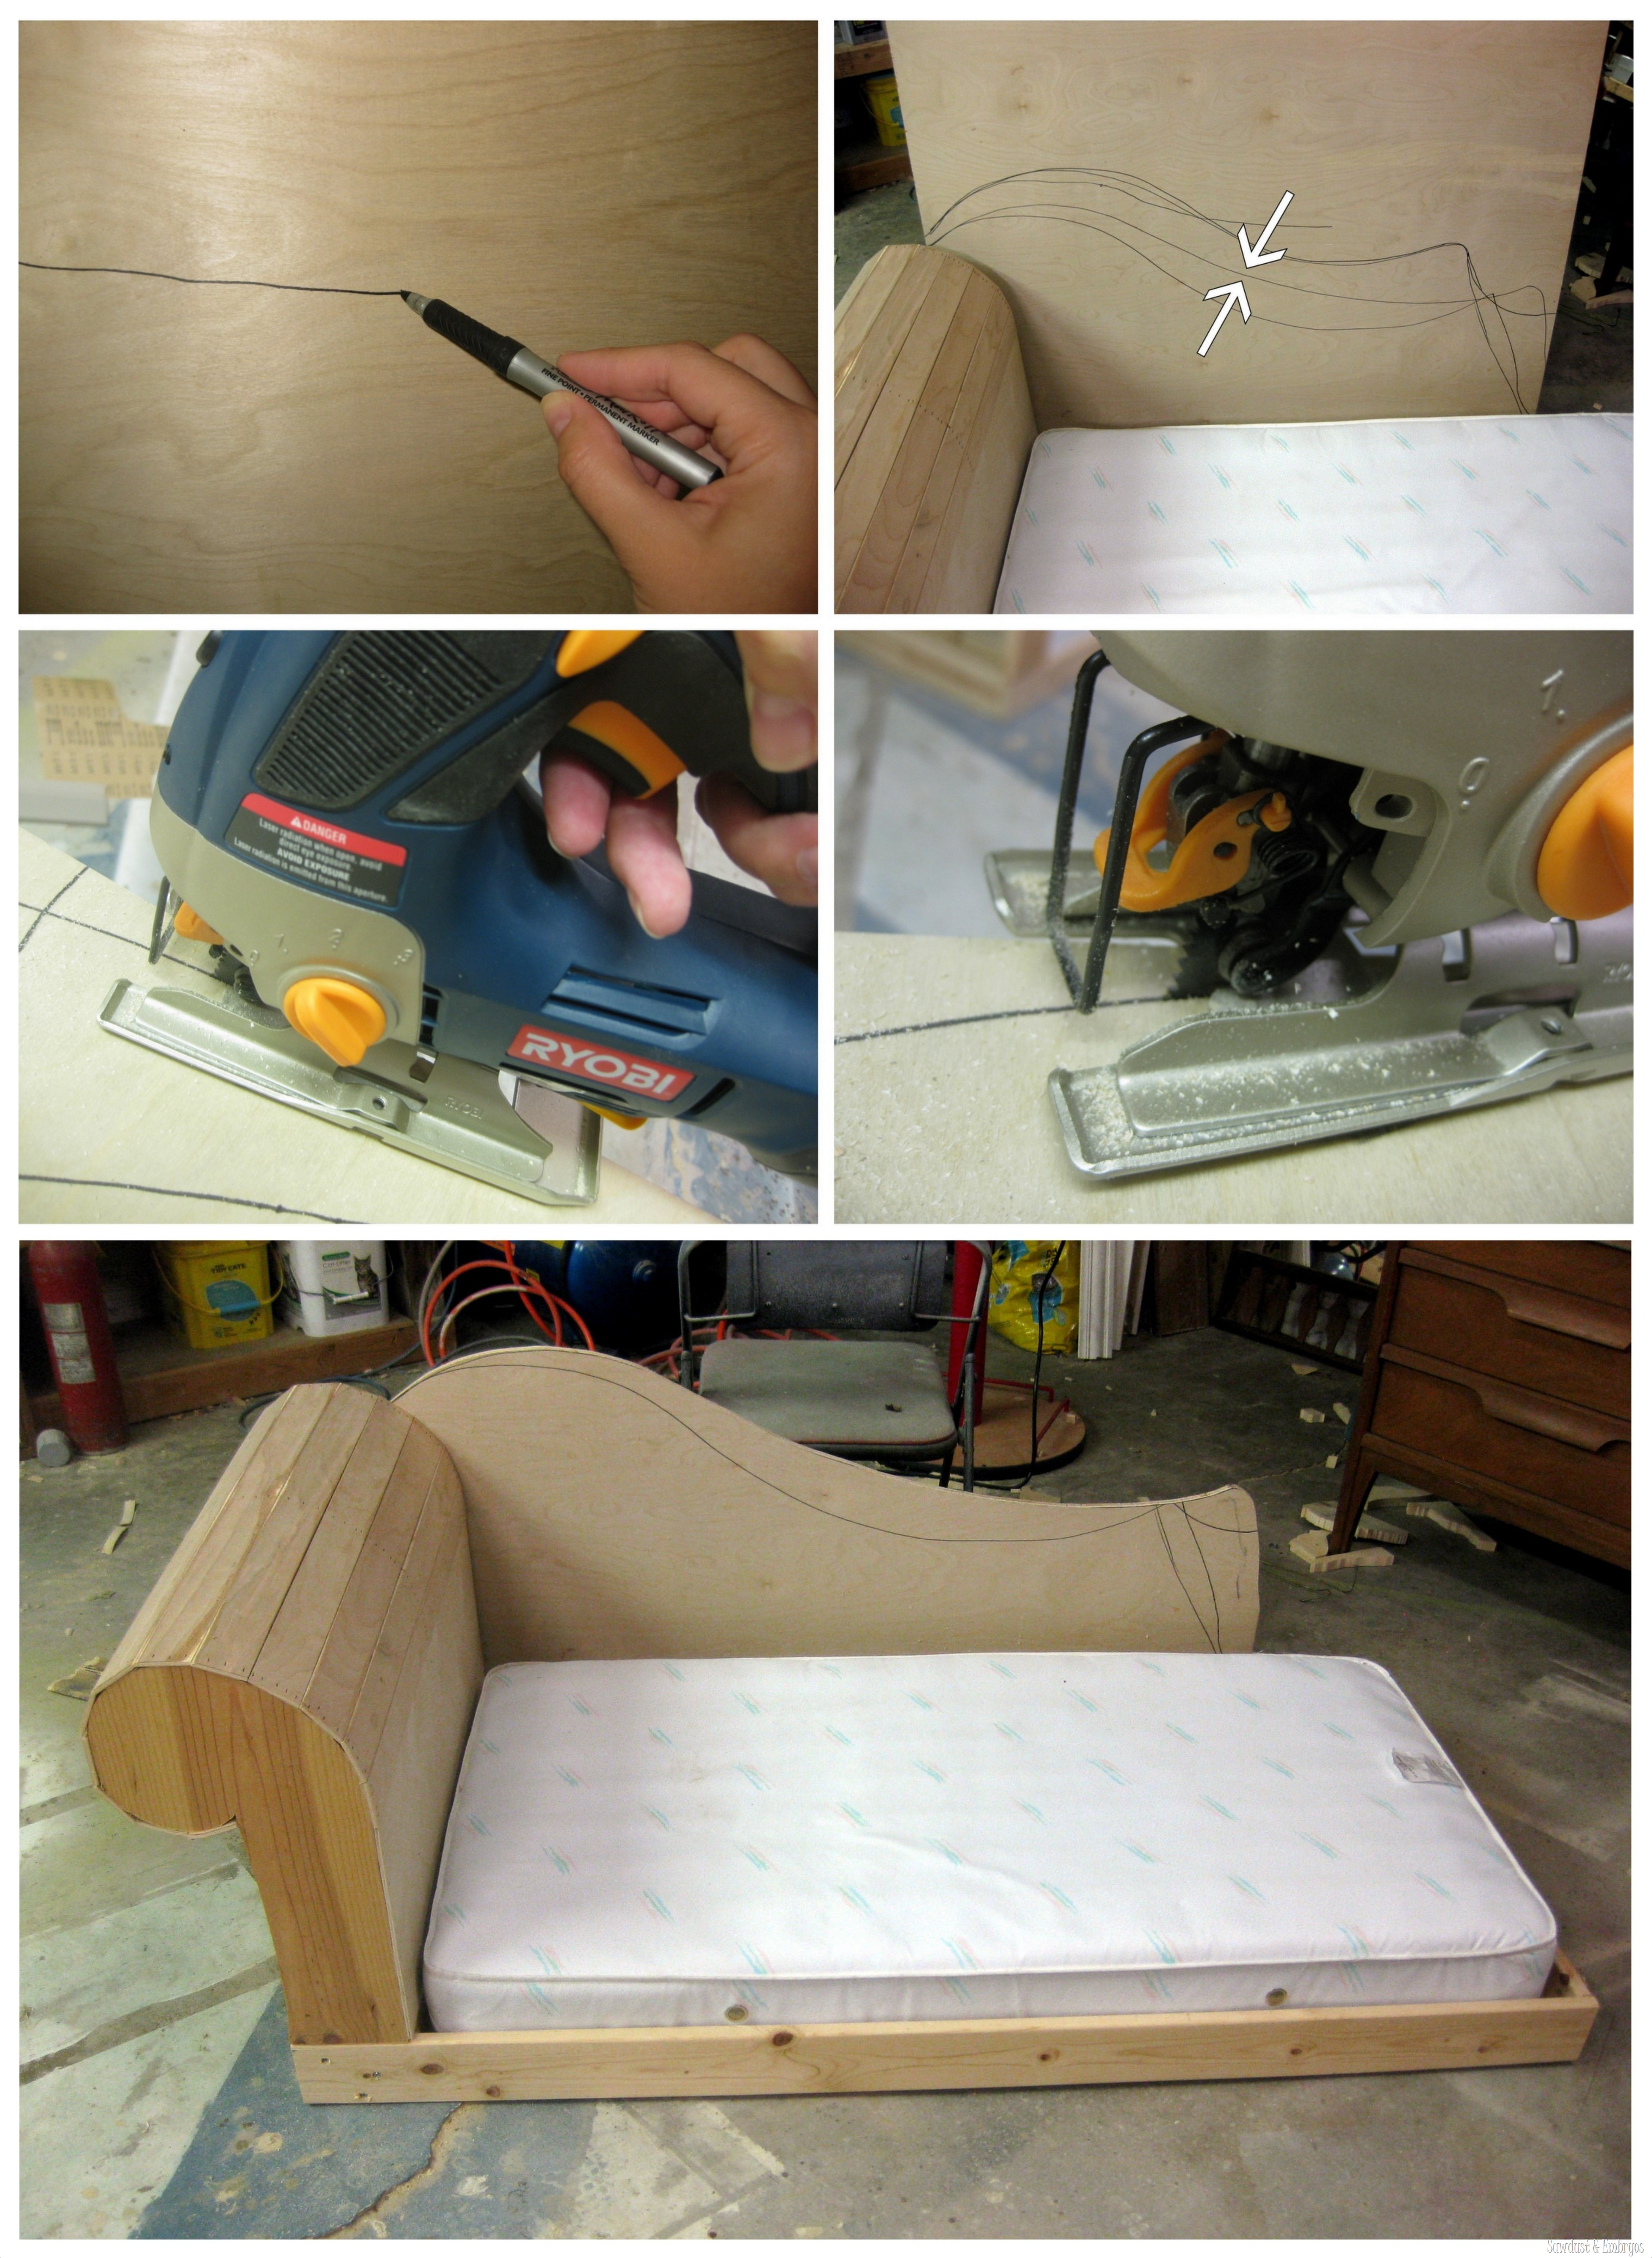 Bed That Looks Like A Couch diy toddler bed / fainting couch {part 2} - reality daydream